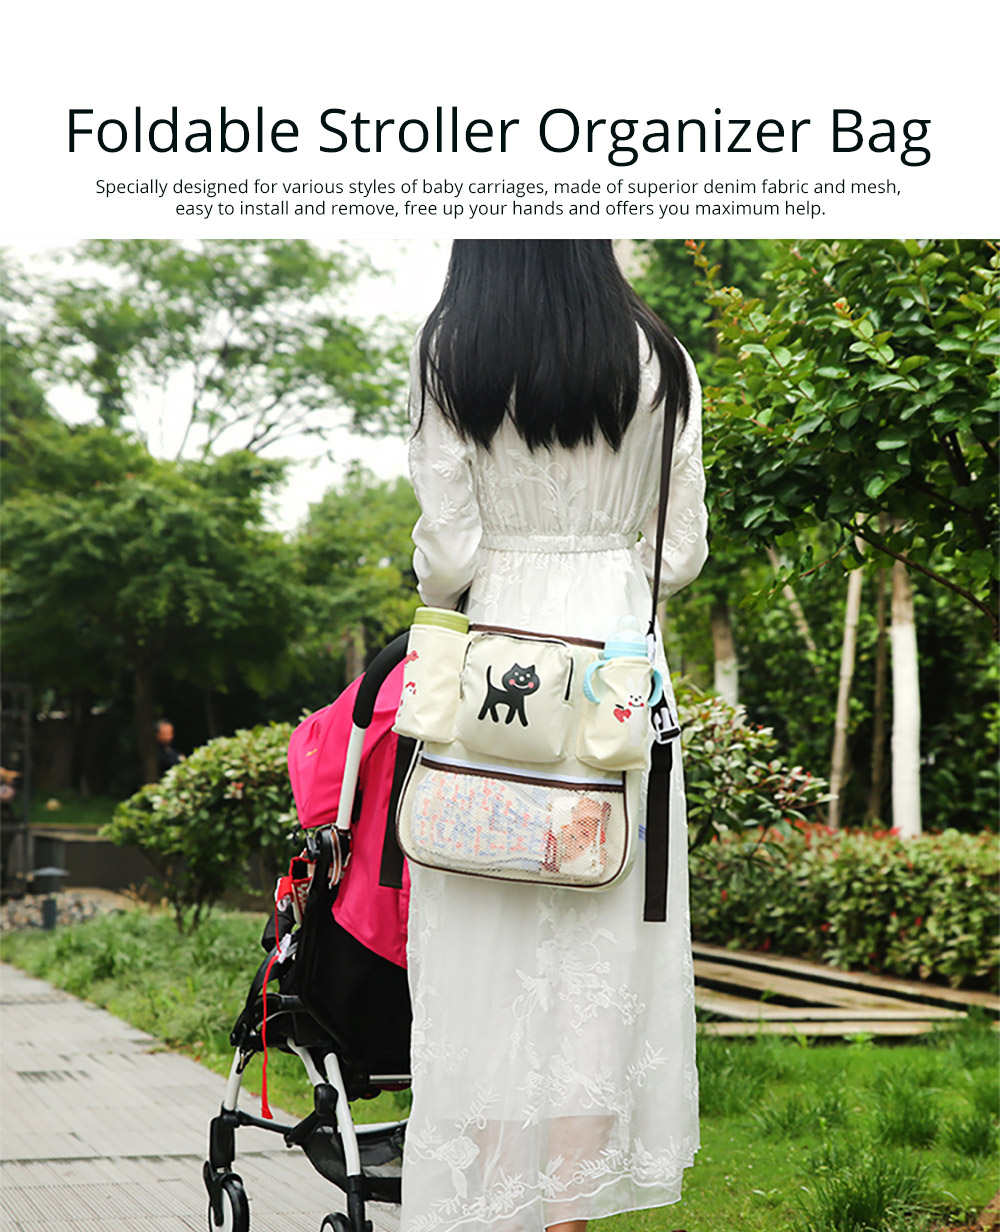 Durable Stroller Organizer Bag for Shipping or Walking, Universal Multipurpose Portable Stroller Organizer Bag with Multiple Compartments Compatible for Shipping Bags, Baby Carriages 6